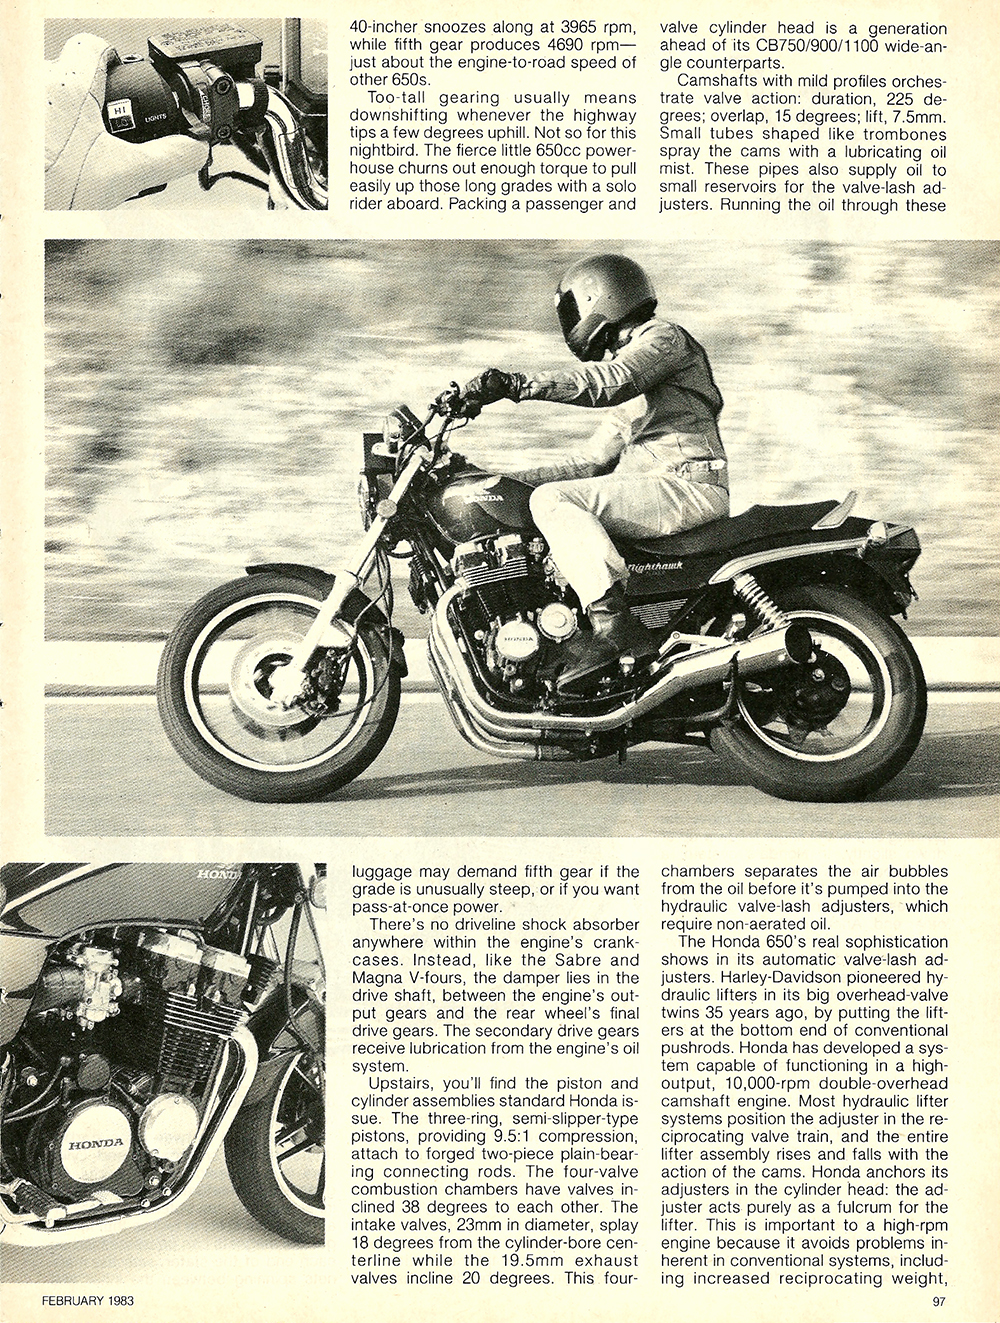 1983 Honda CB650SC Nighthawk road test 4.jpg